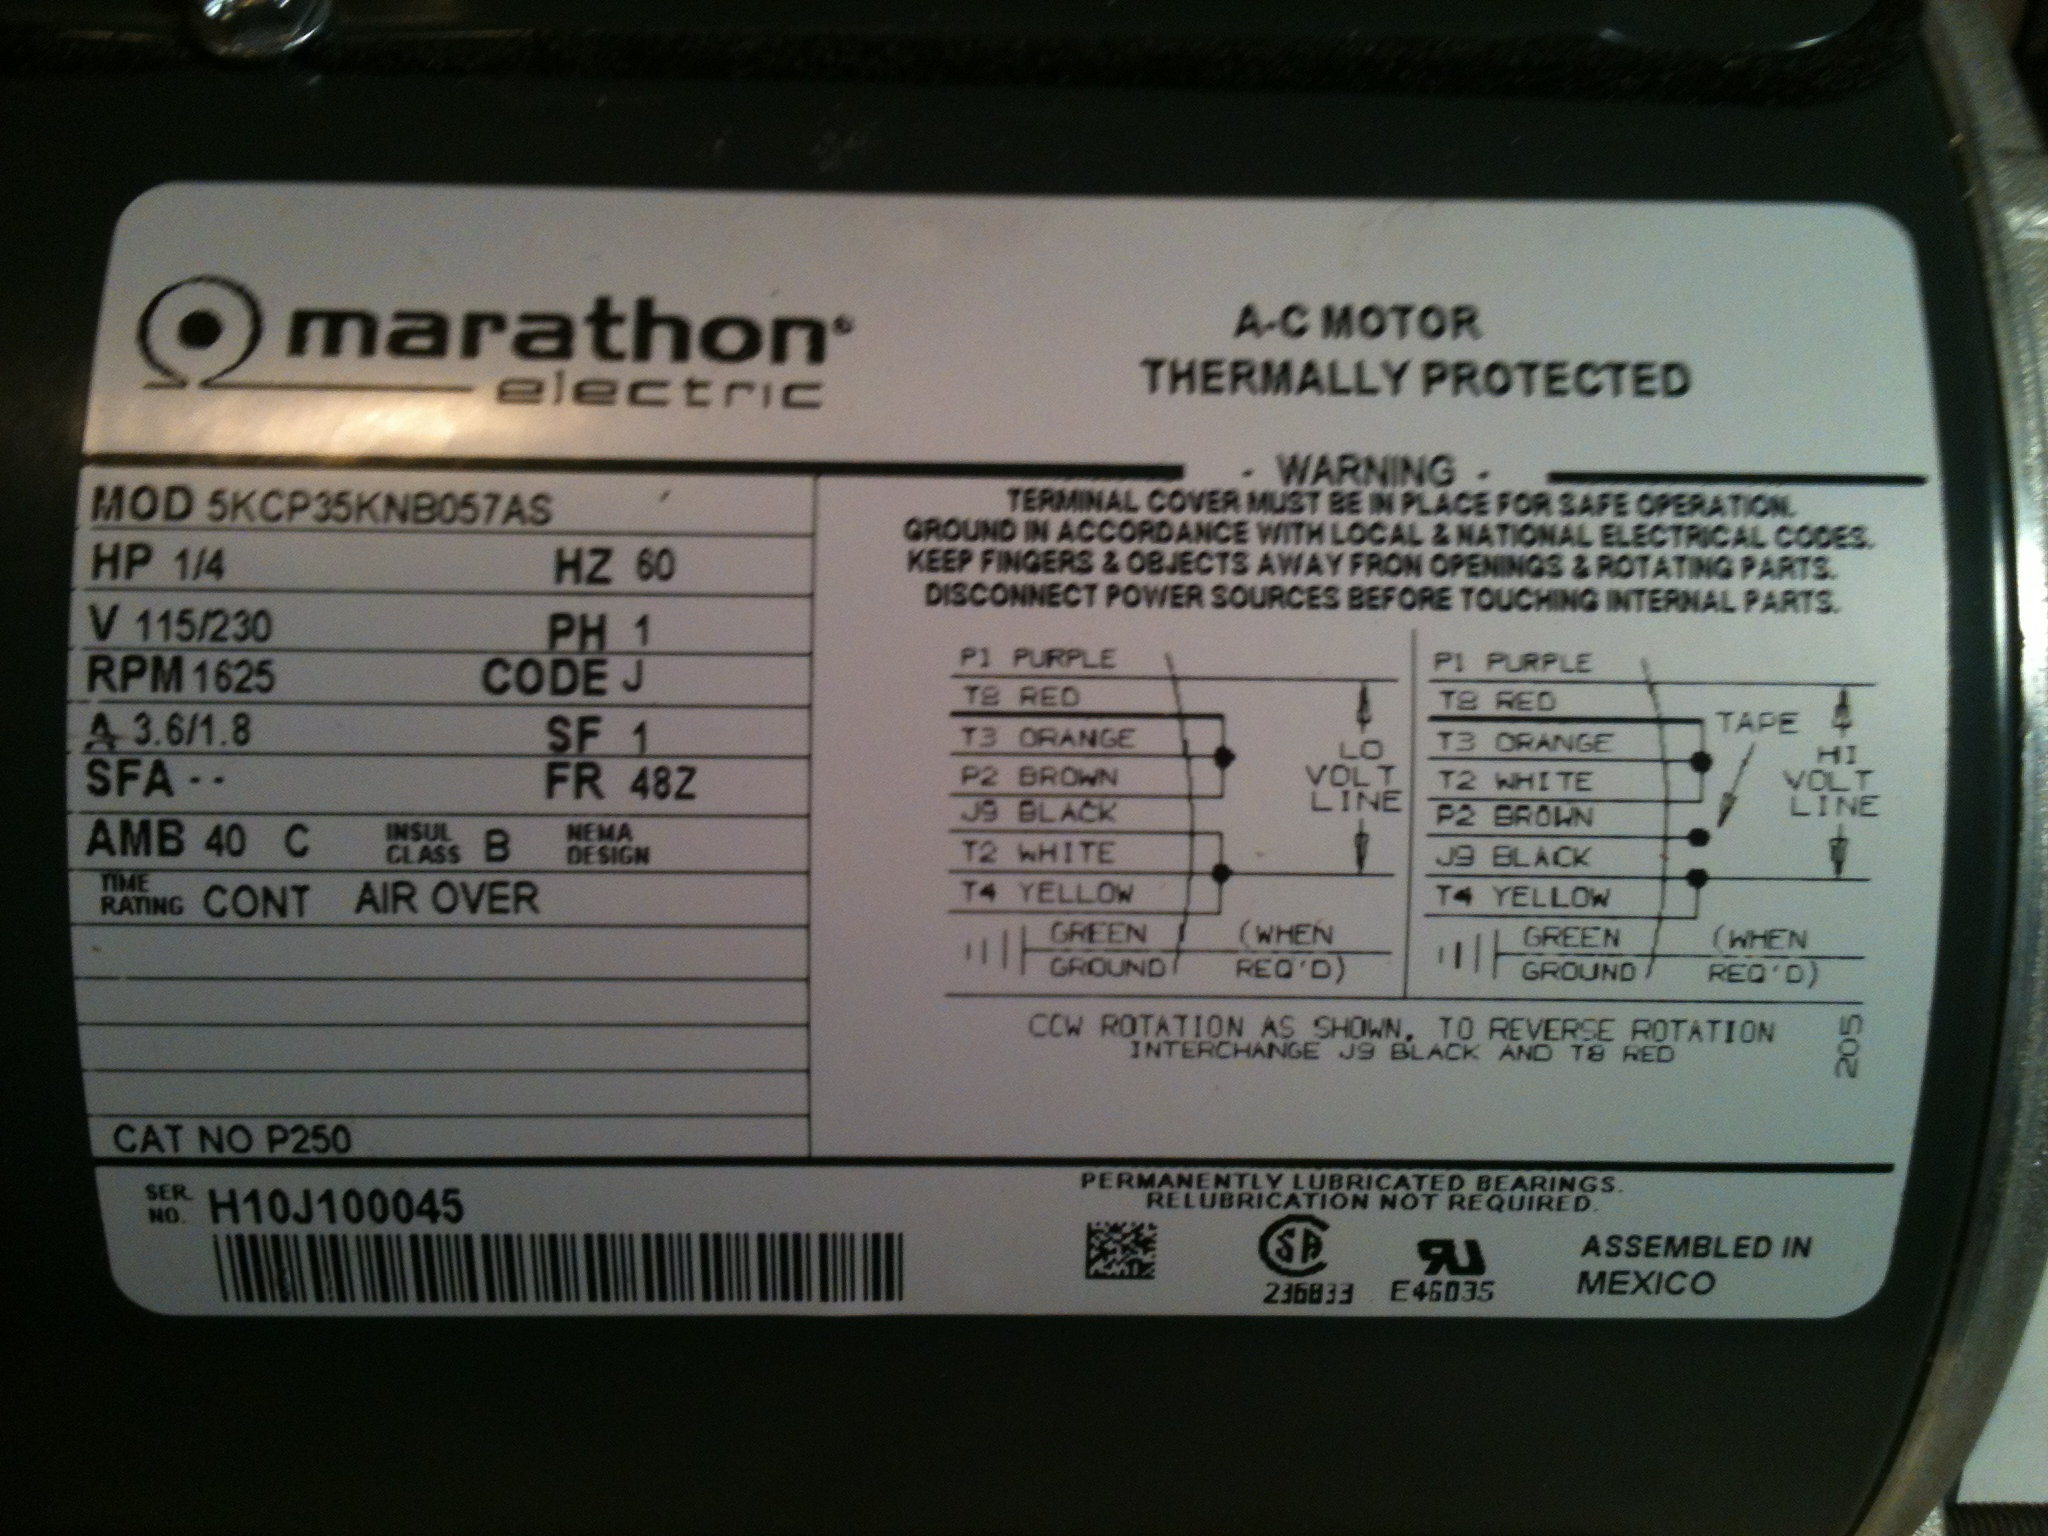 marathon motor wiring diagram wiring diagram data schema Marathon 3 4 HP Motor Wiring Diagram 1 Hp Marathon Motor Wiring Diagram #6